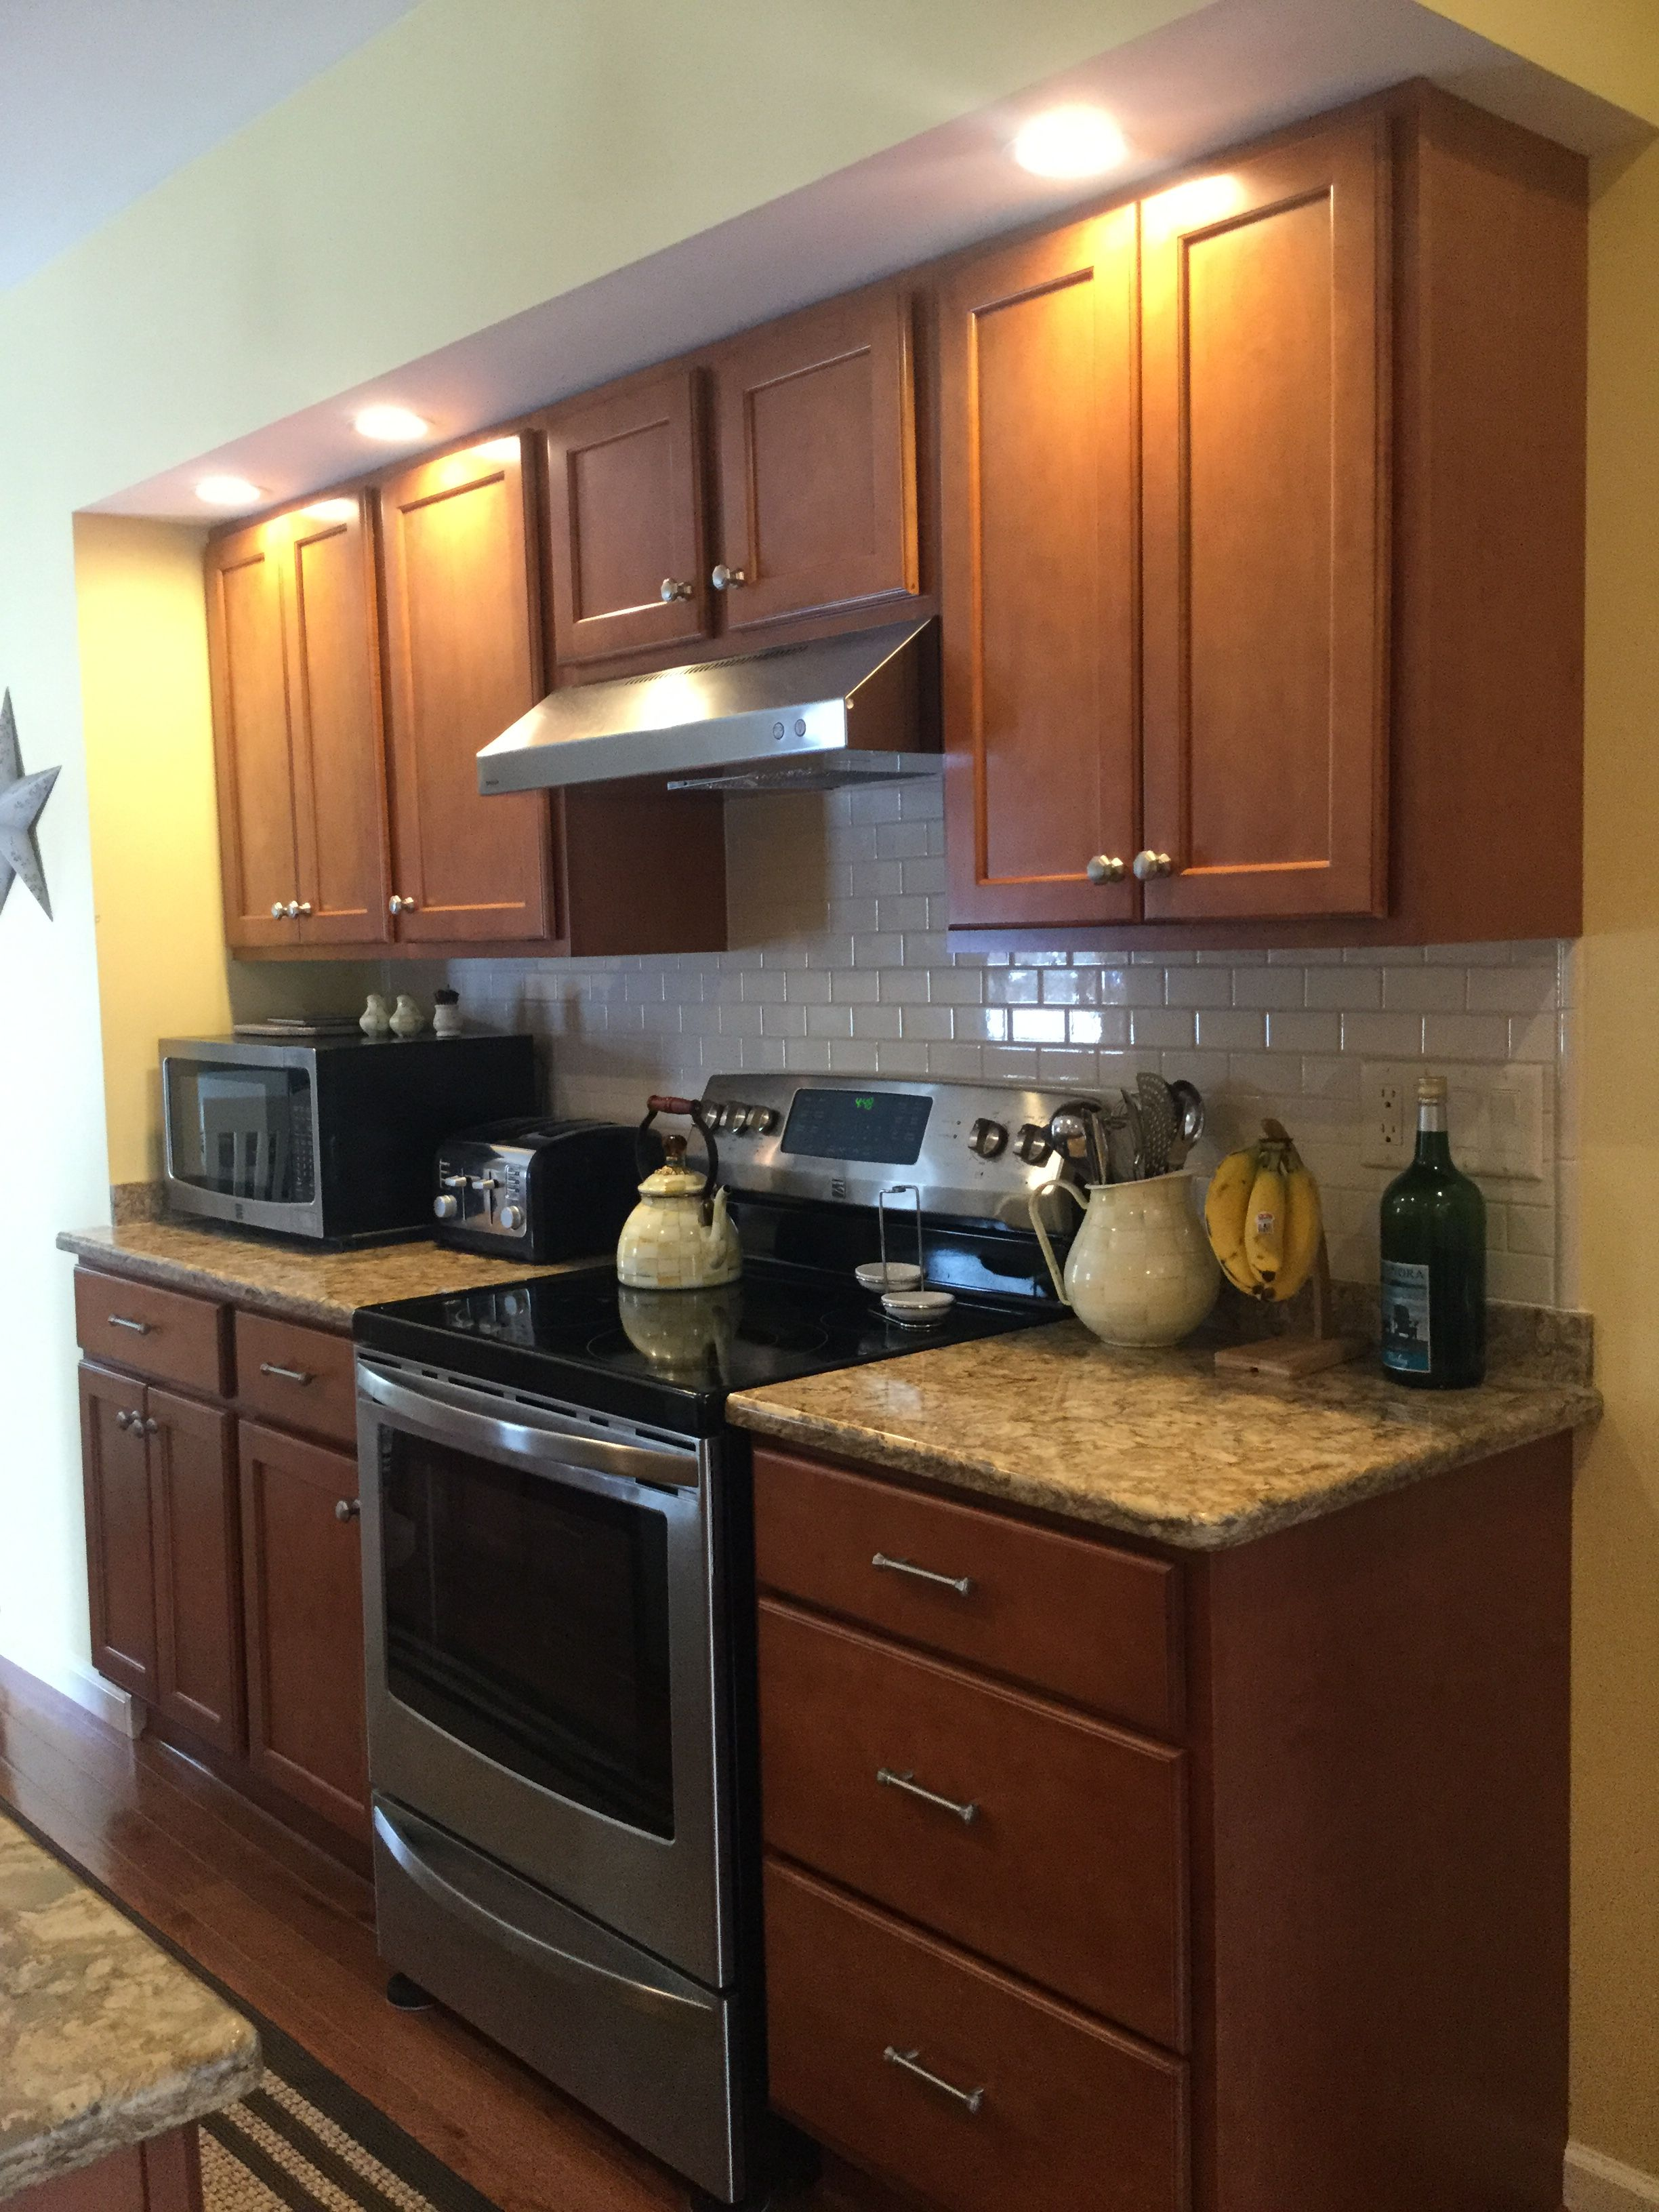 Kraftmaid Cabinets In Cinnamon With Cambria Countertops Datile Backsplash In Almond Kitchen Dining Home Kitchens Kitchen